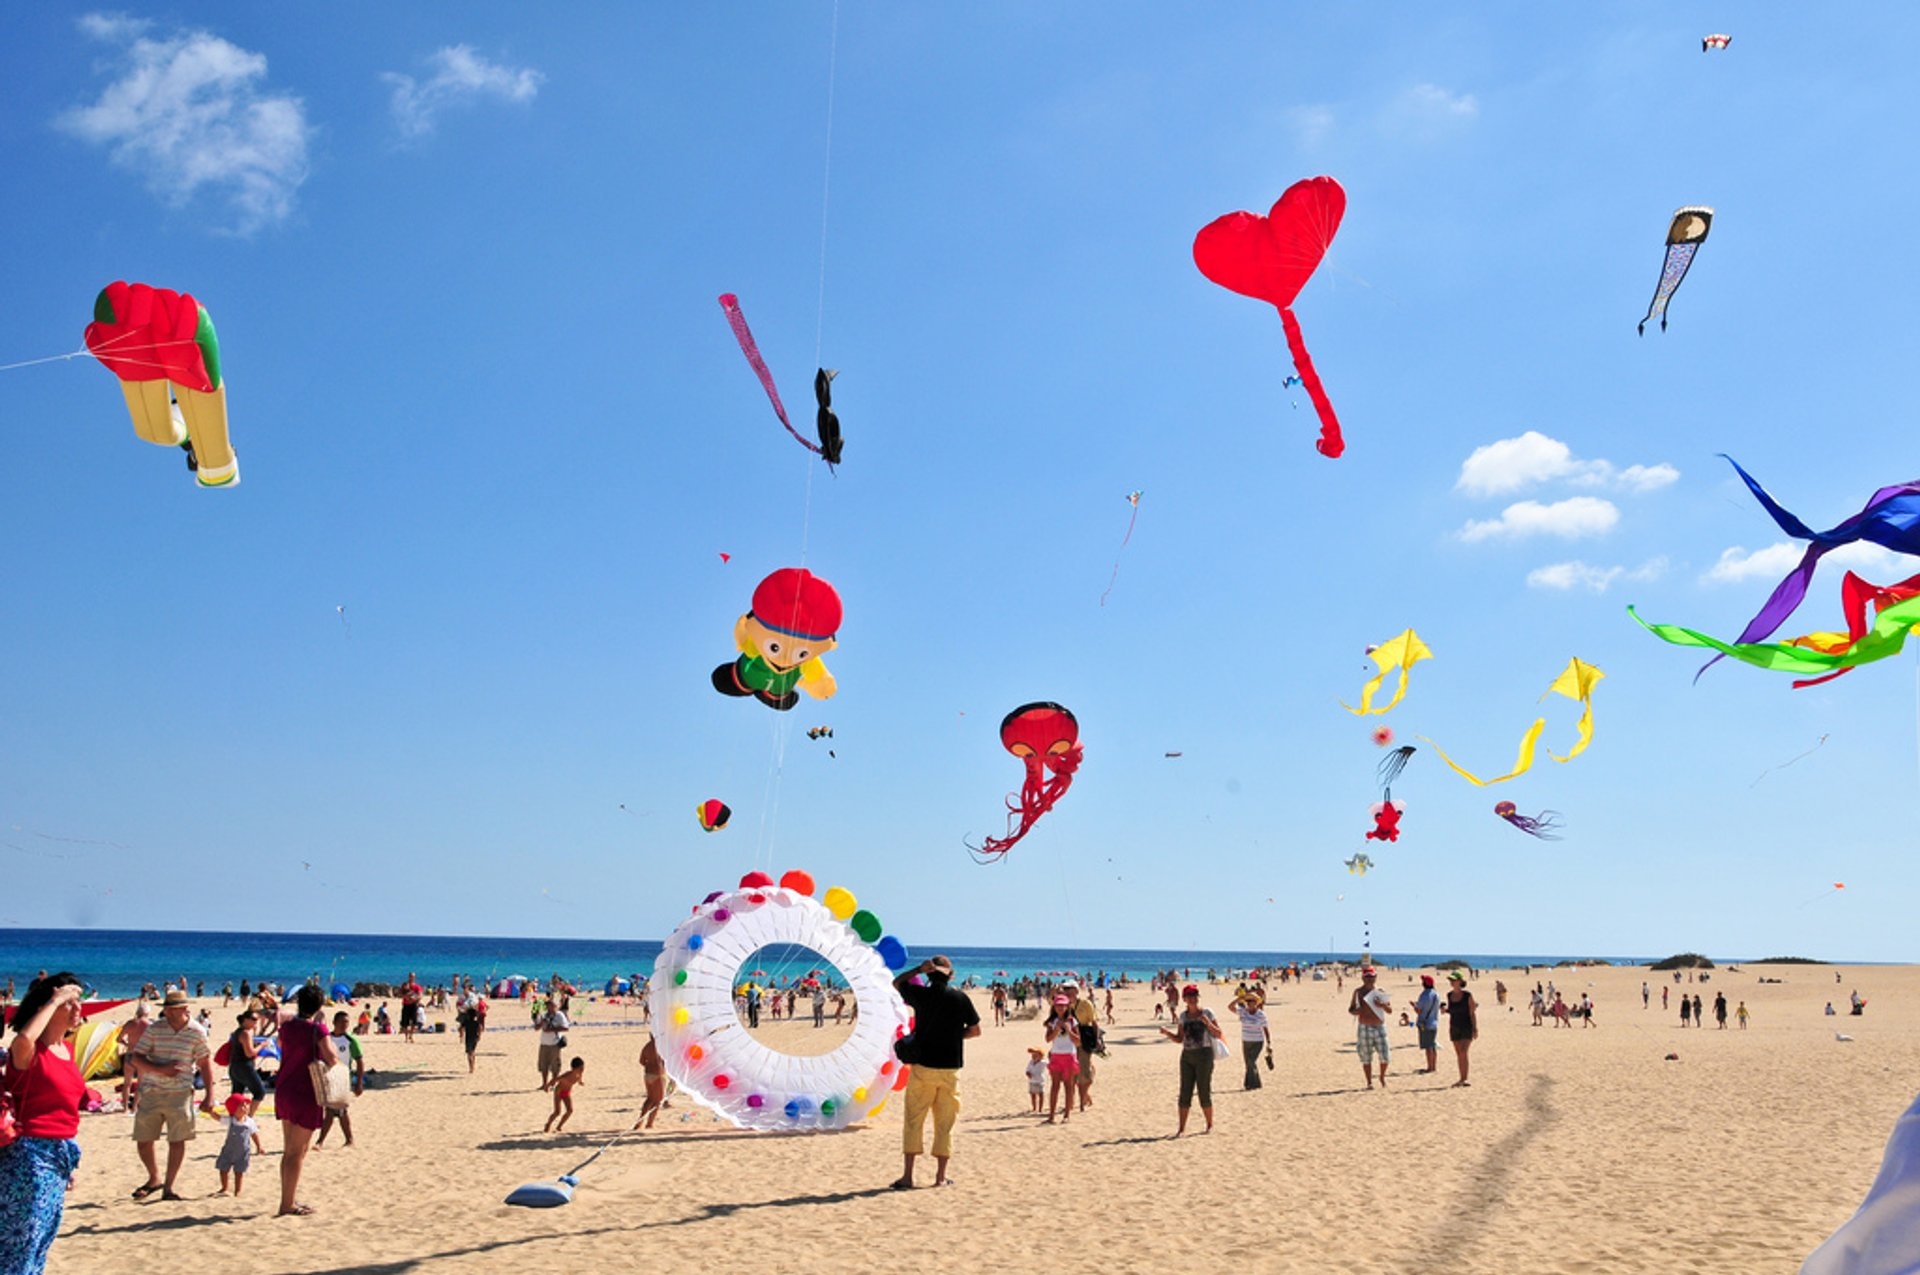 Fuerteventura Kite Festival in Canary Islands 2020 - Best Time